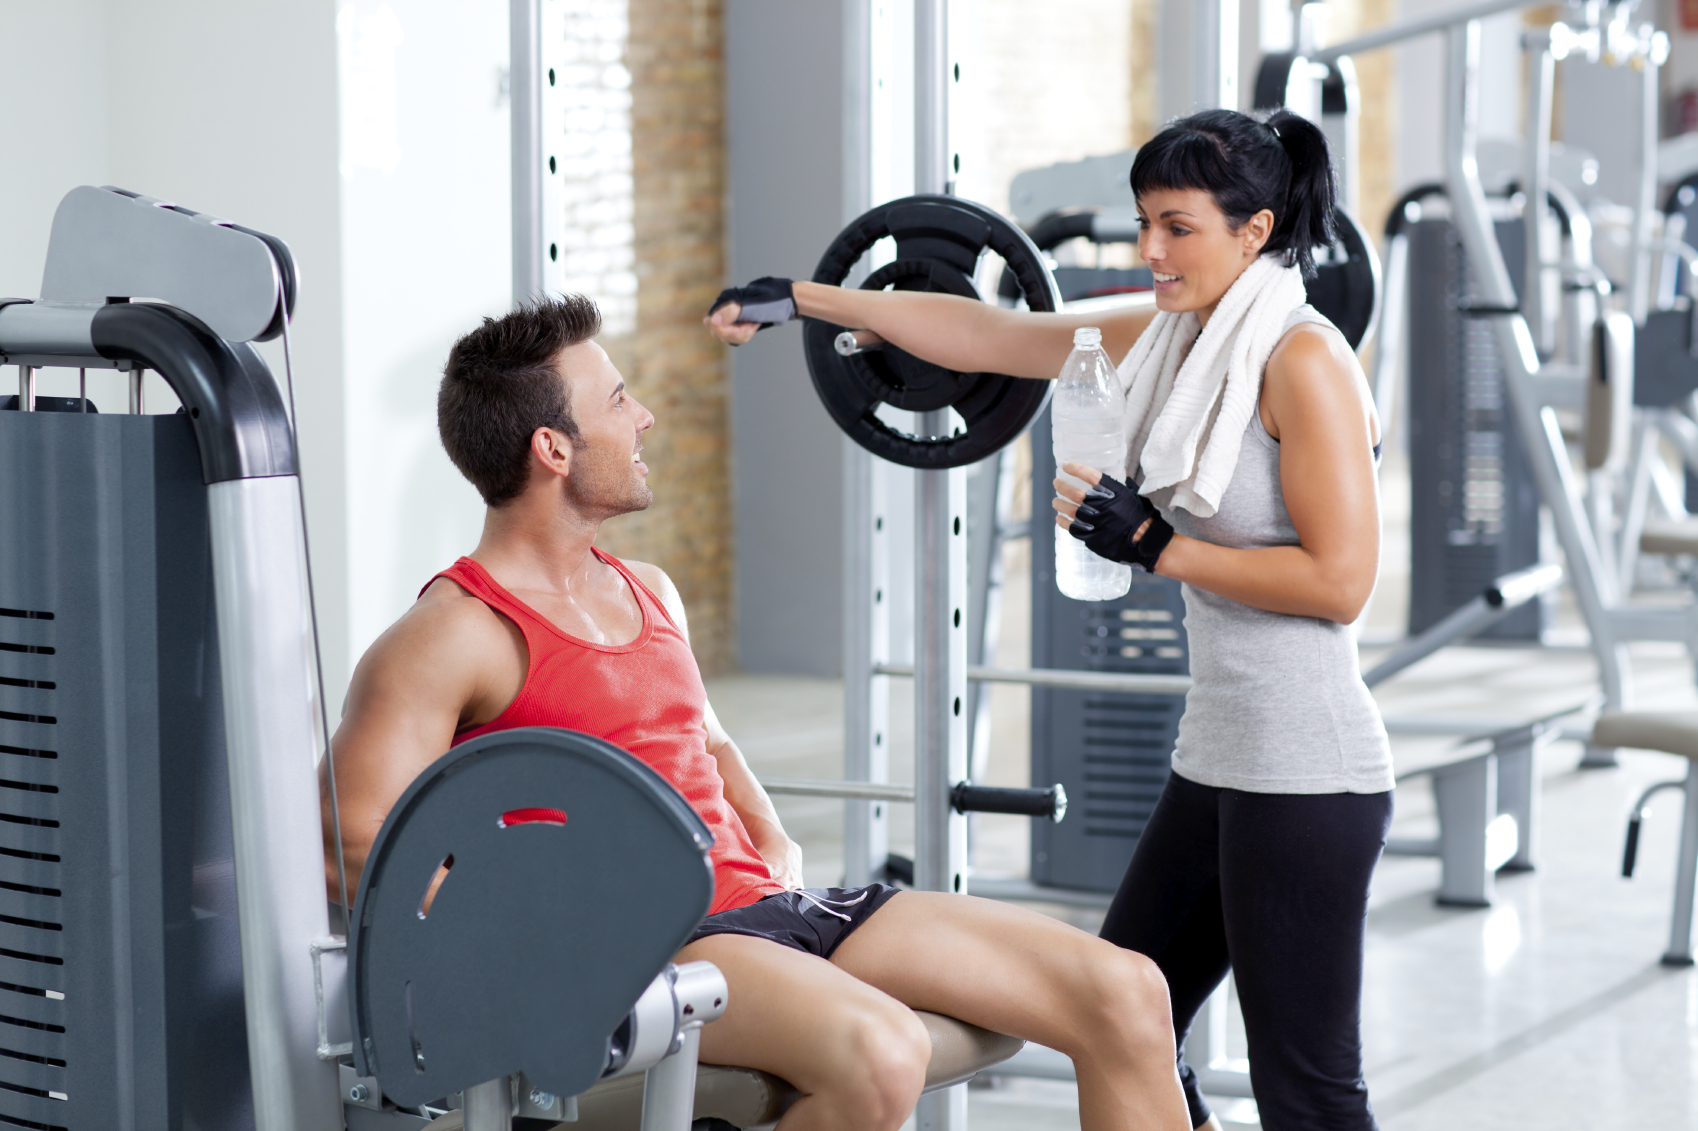 Do Muscles Compensate The Disadvantage Of Being a Short Man With Girls?